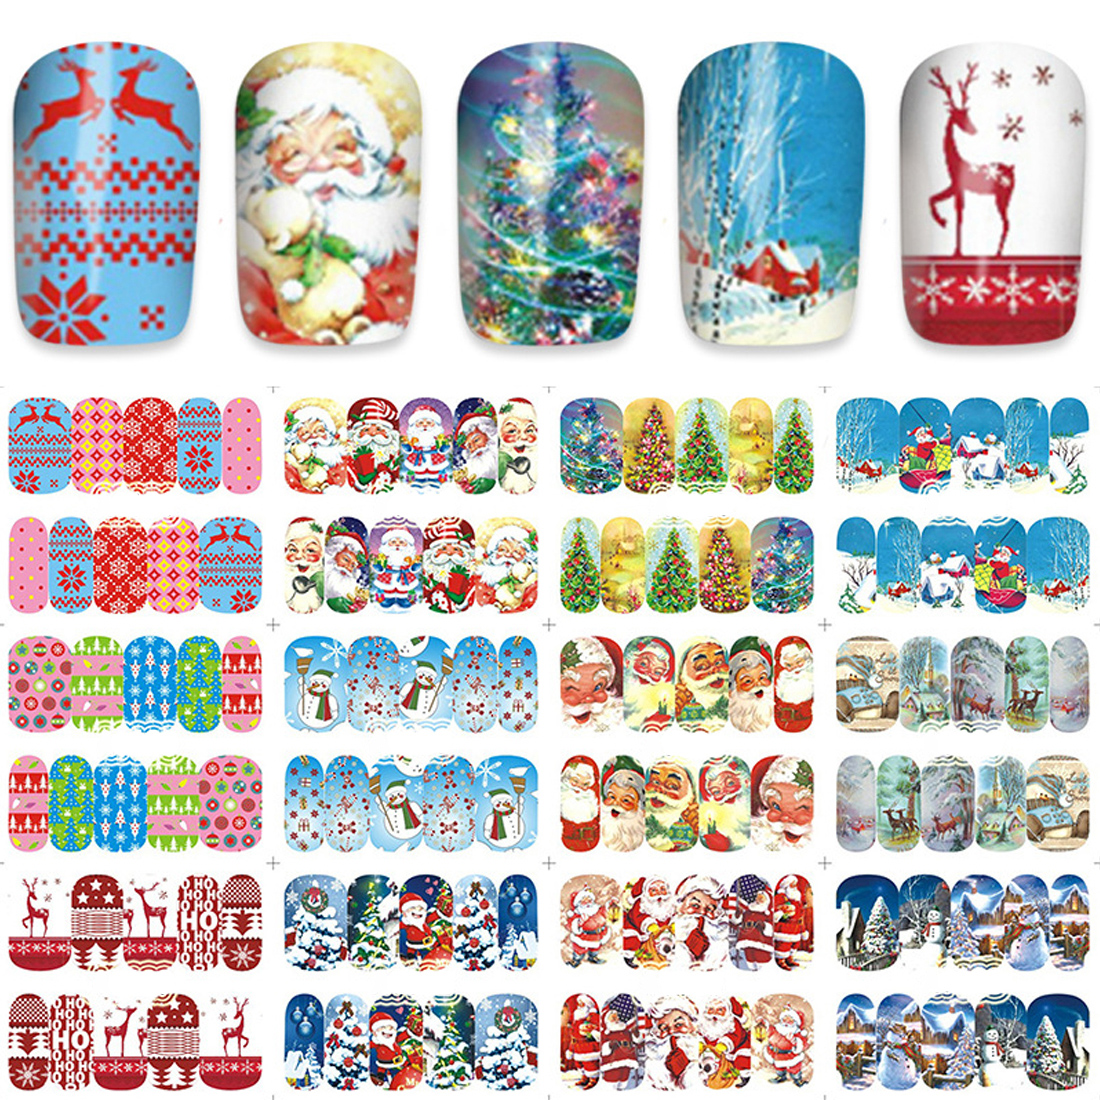 Nail Art sticker - New Year Tattoo 12 Sheets Christmas Water Decal  1